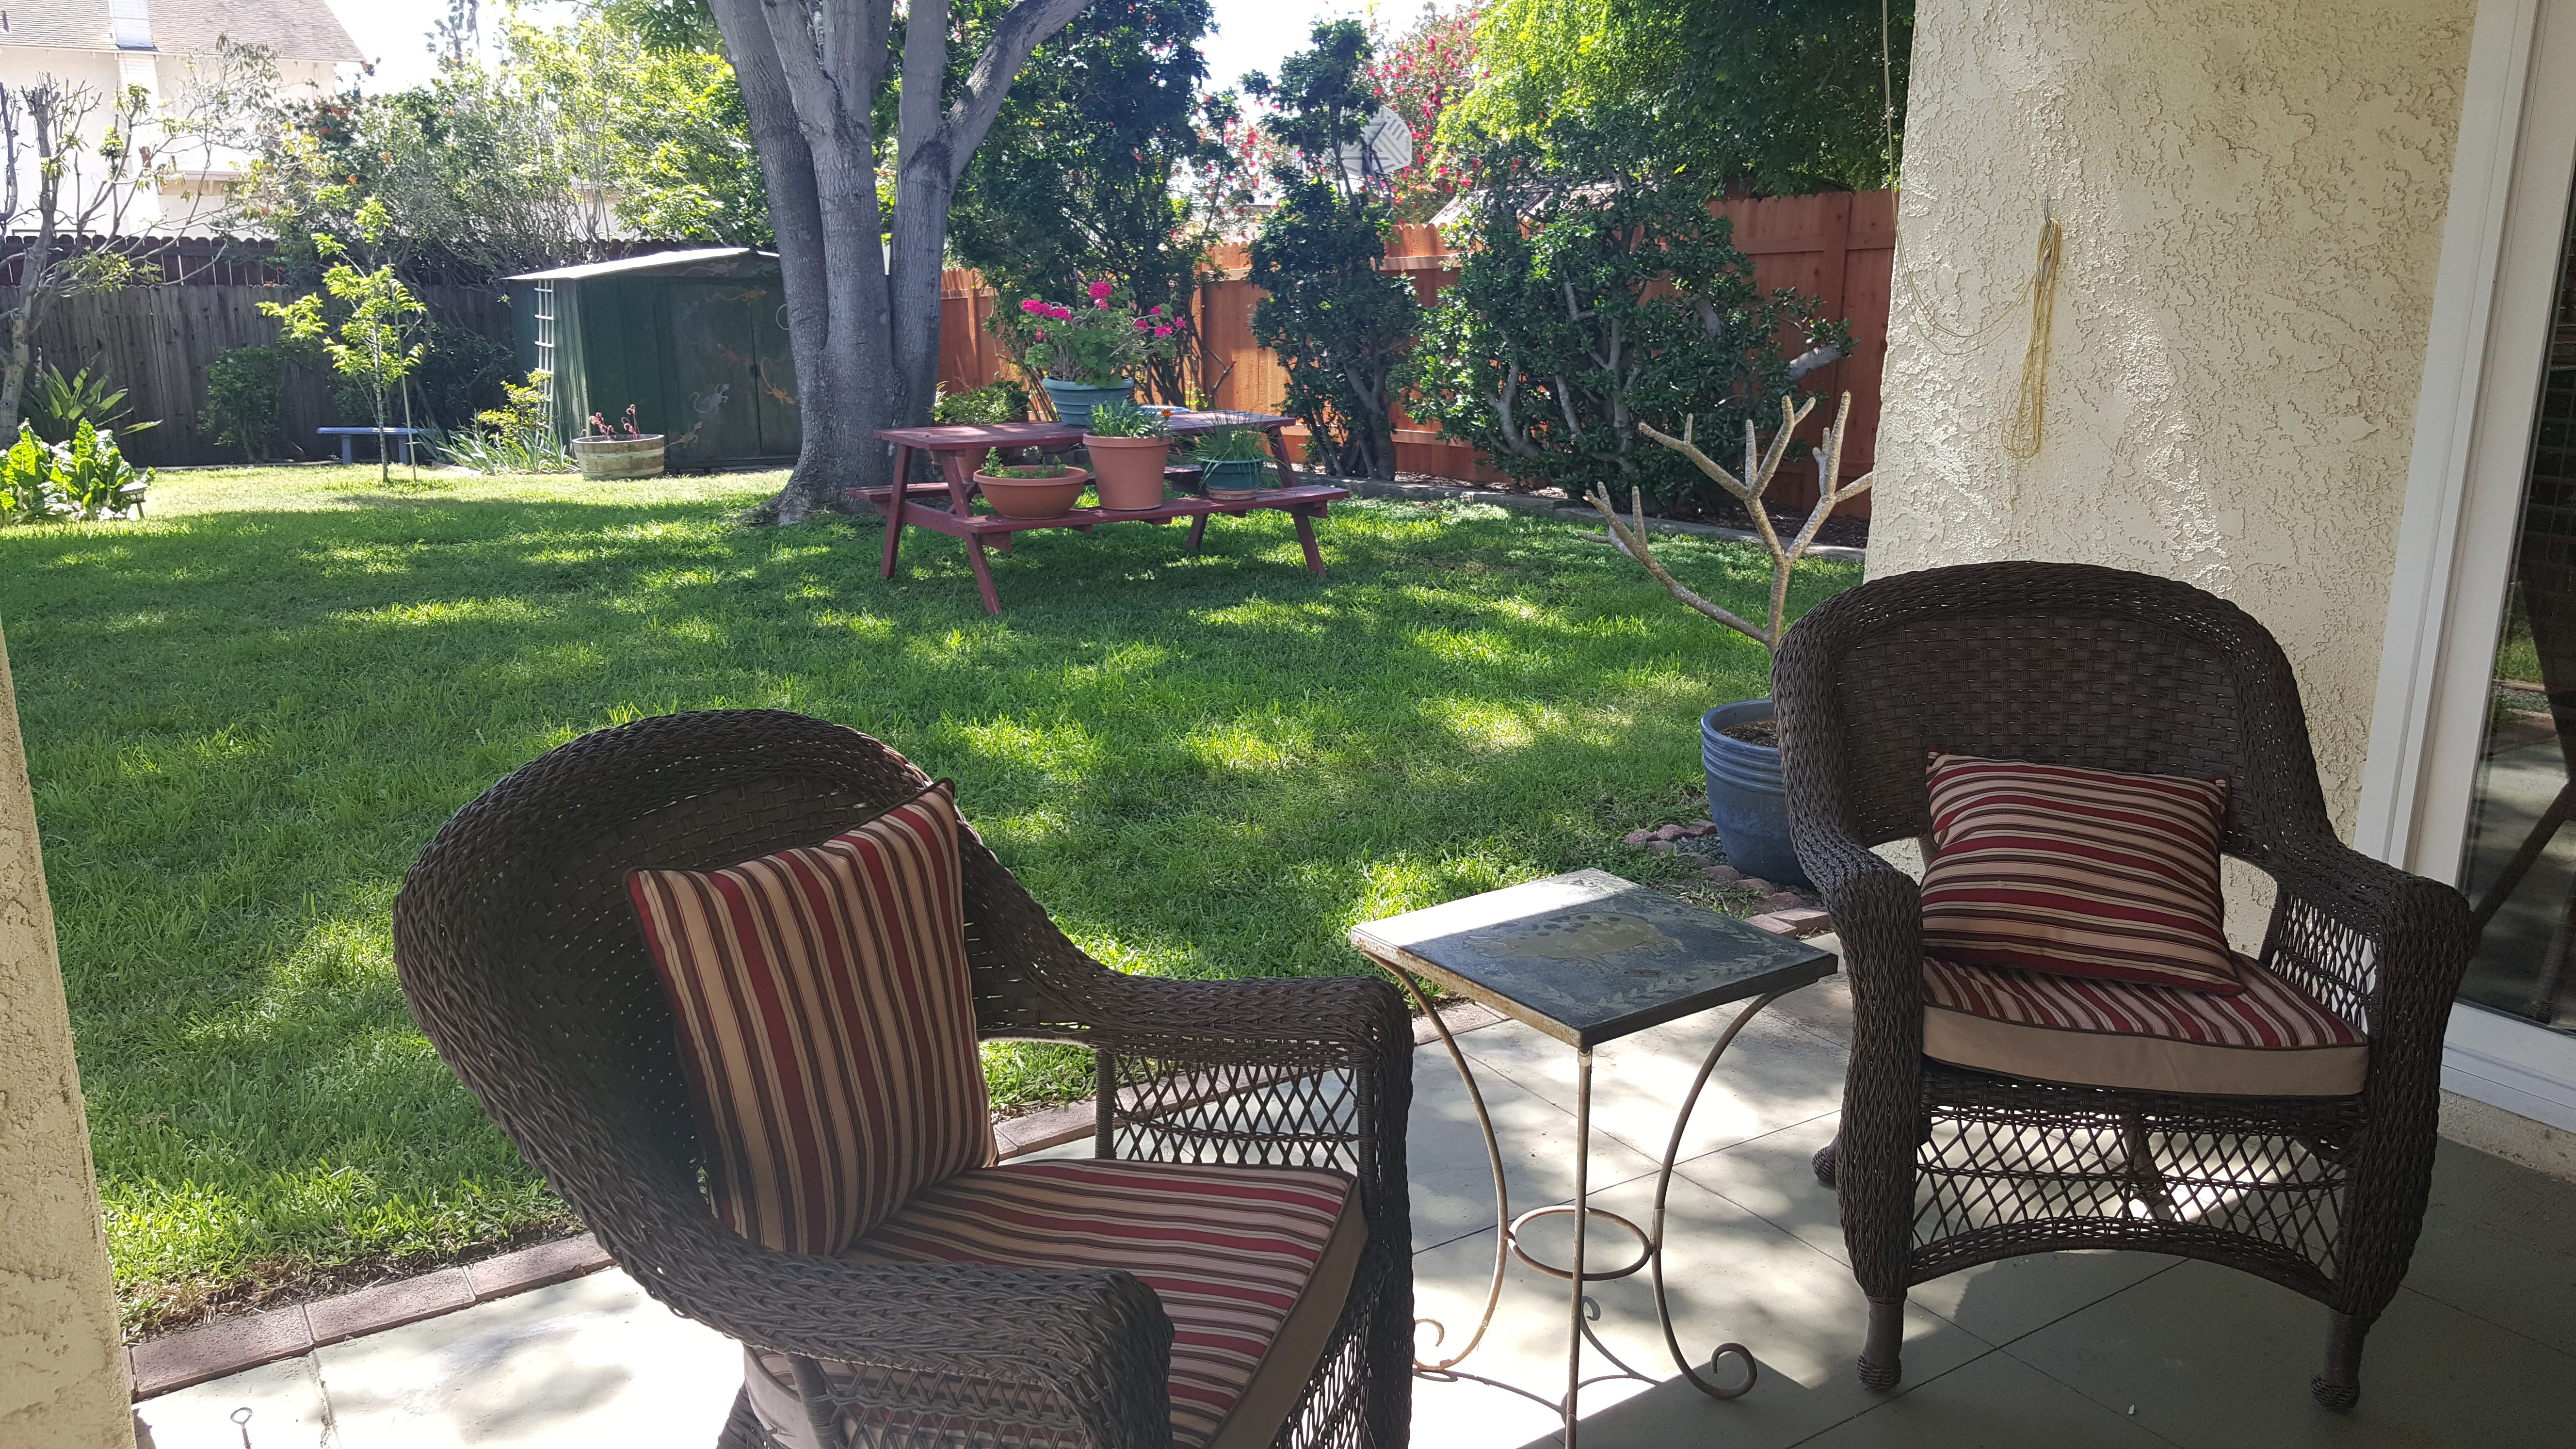 covered porch area 3400 keel ave home for sale in Via Marina Oxnard CA